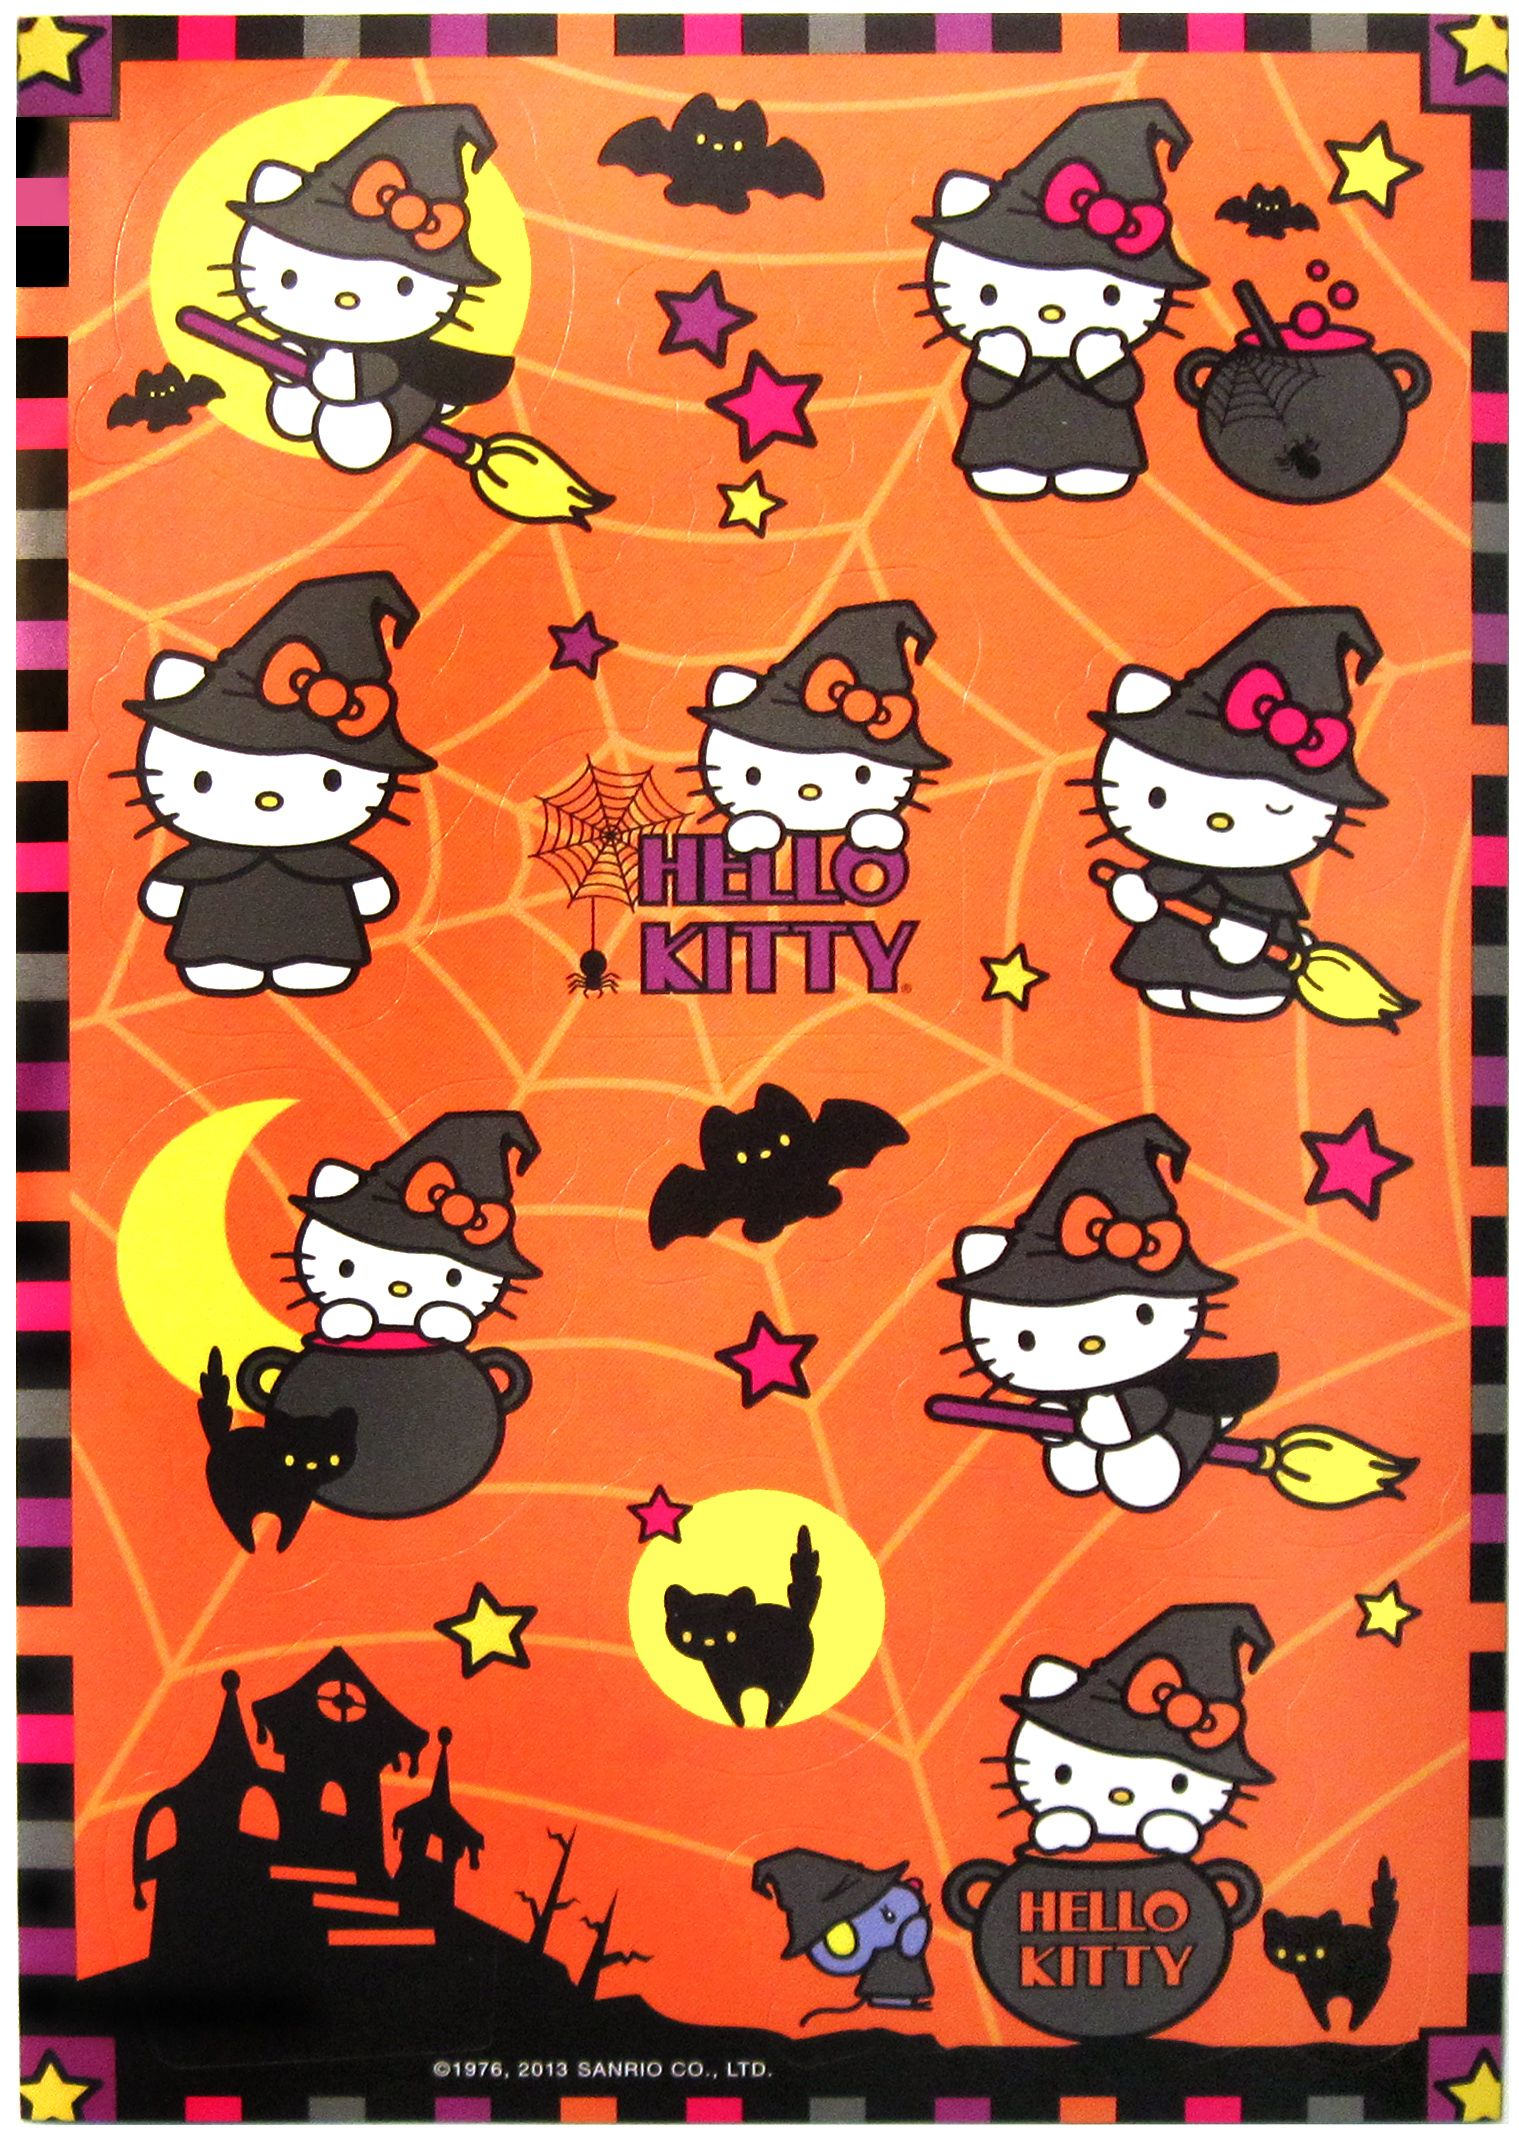 Cool Wallpaper Hello Kitty Halloween - ad7fdb6e98993edd327e95fd4245b2c3  Gallery_121198.jpg